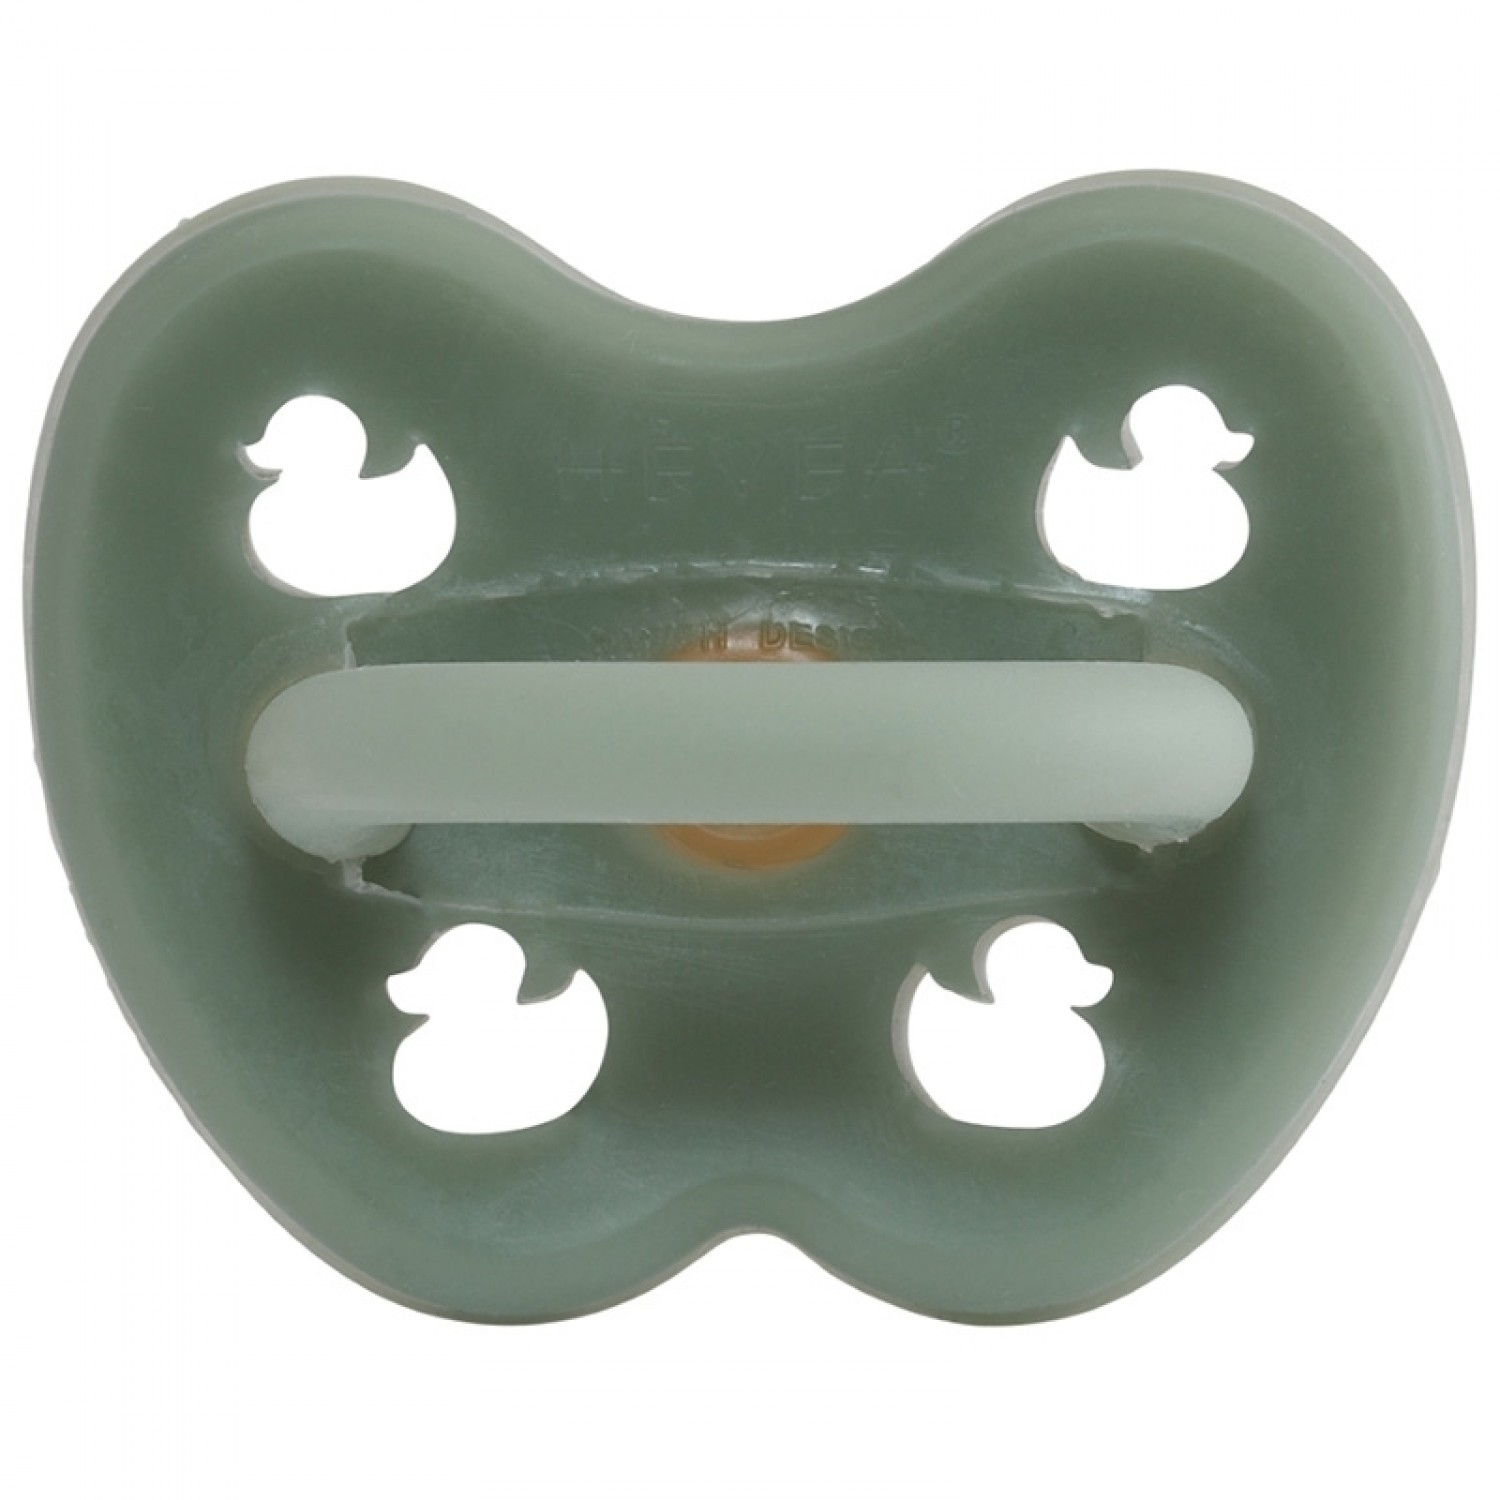 Cantaloupe, 0-3 Months HEVEA Orthodontic Pacifier Made from Natural Rubber BPA-Free and Plastic-Free